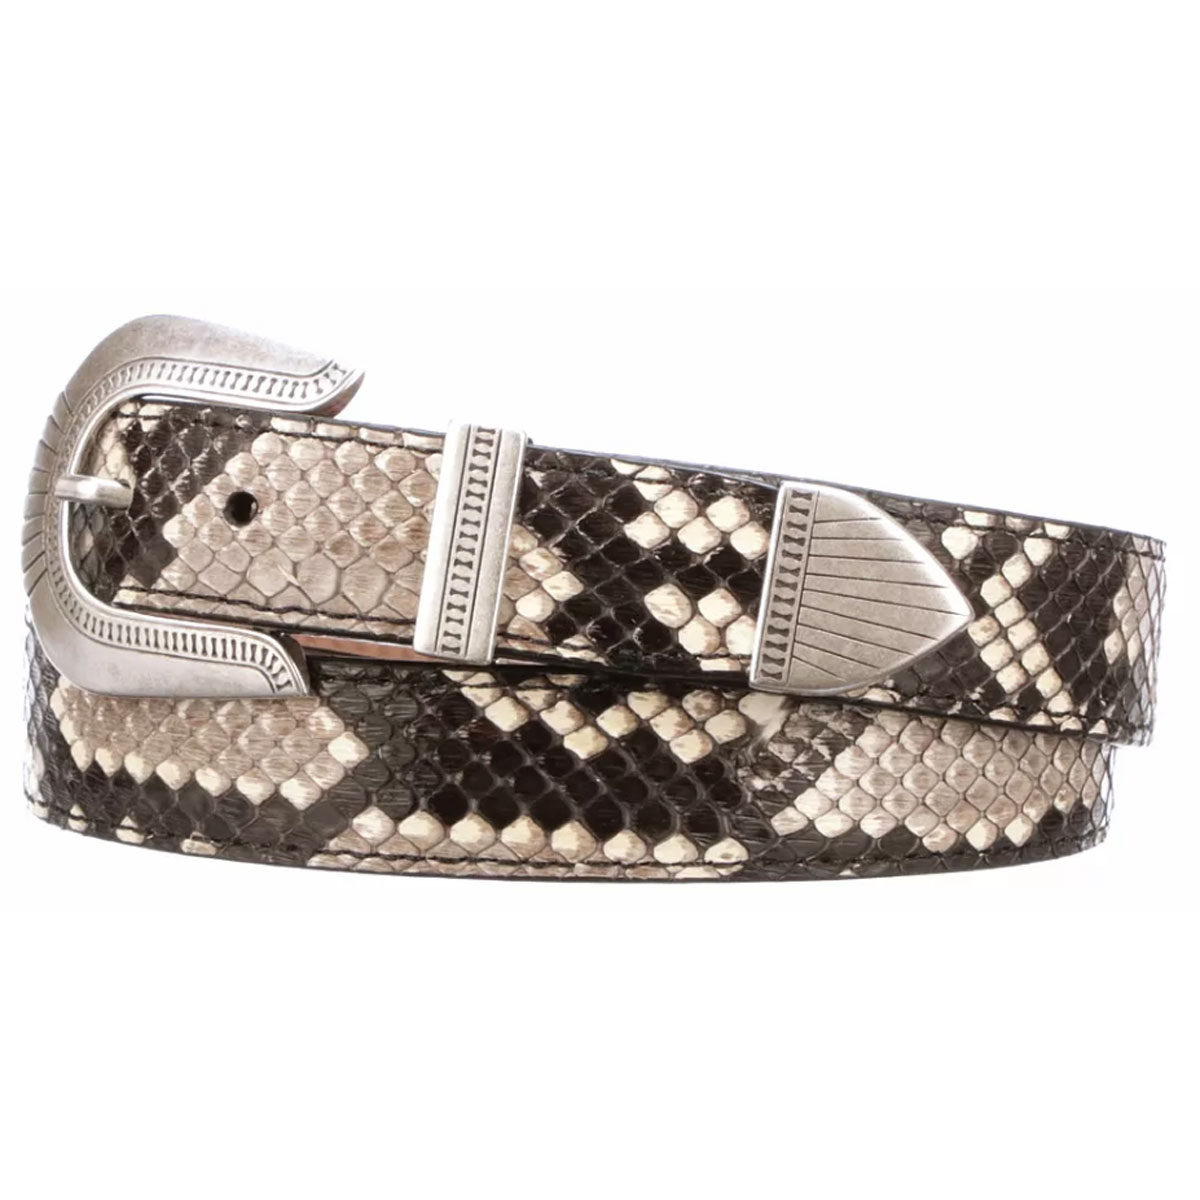 Lucchese Women's Black & White Python Belt